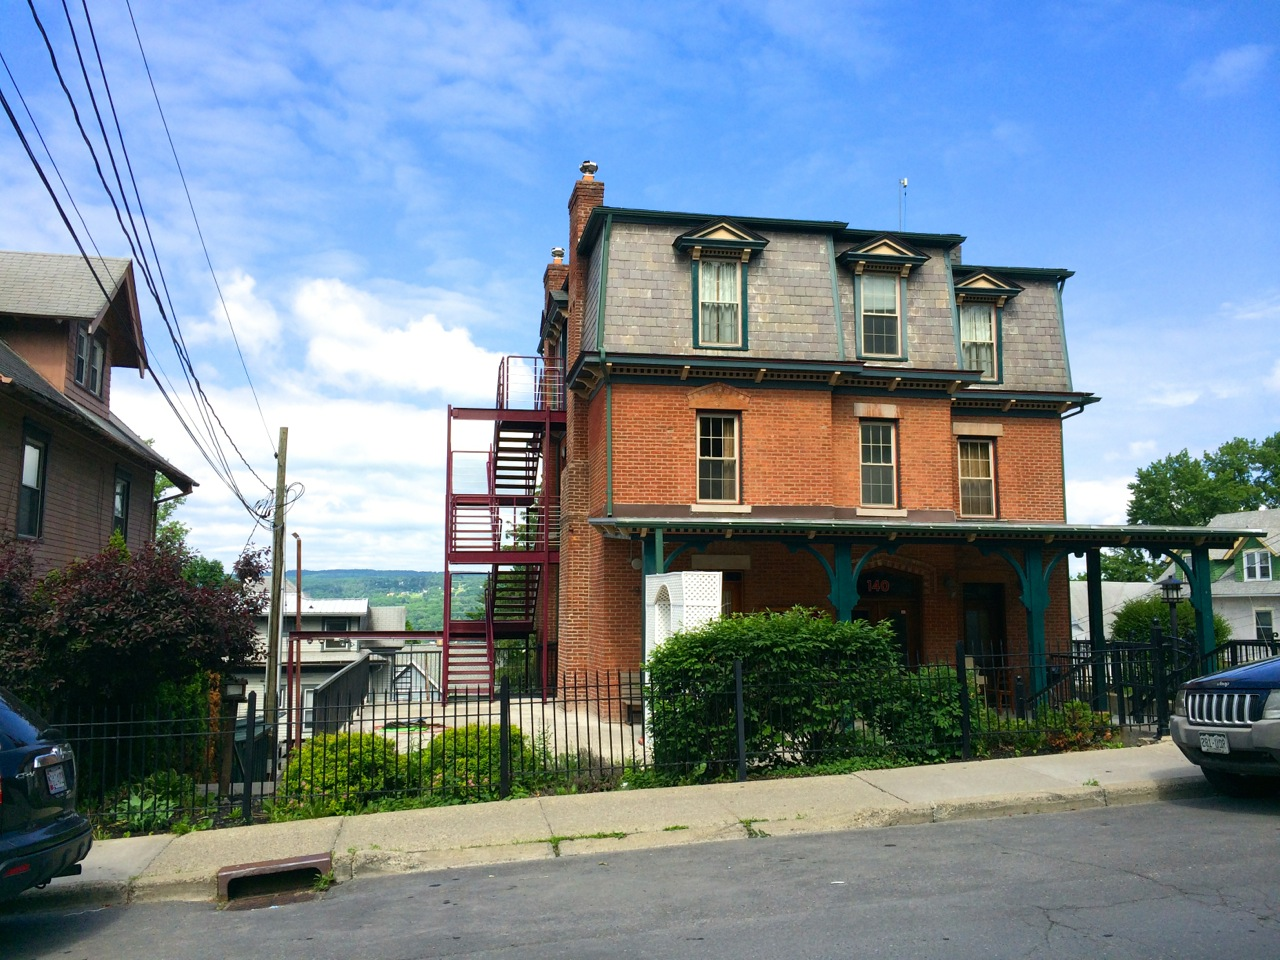 140-College-Ave-Ithaca-0615141